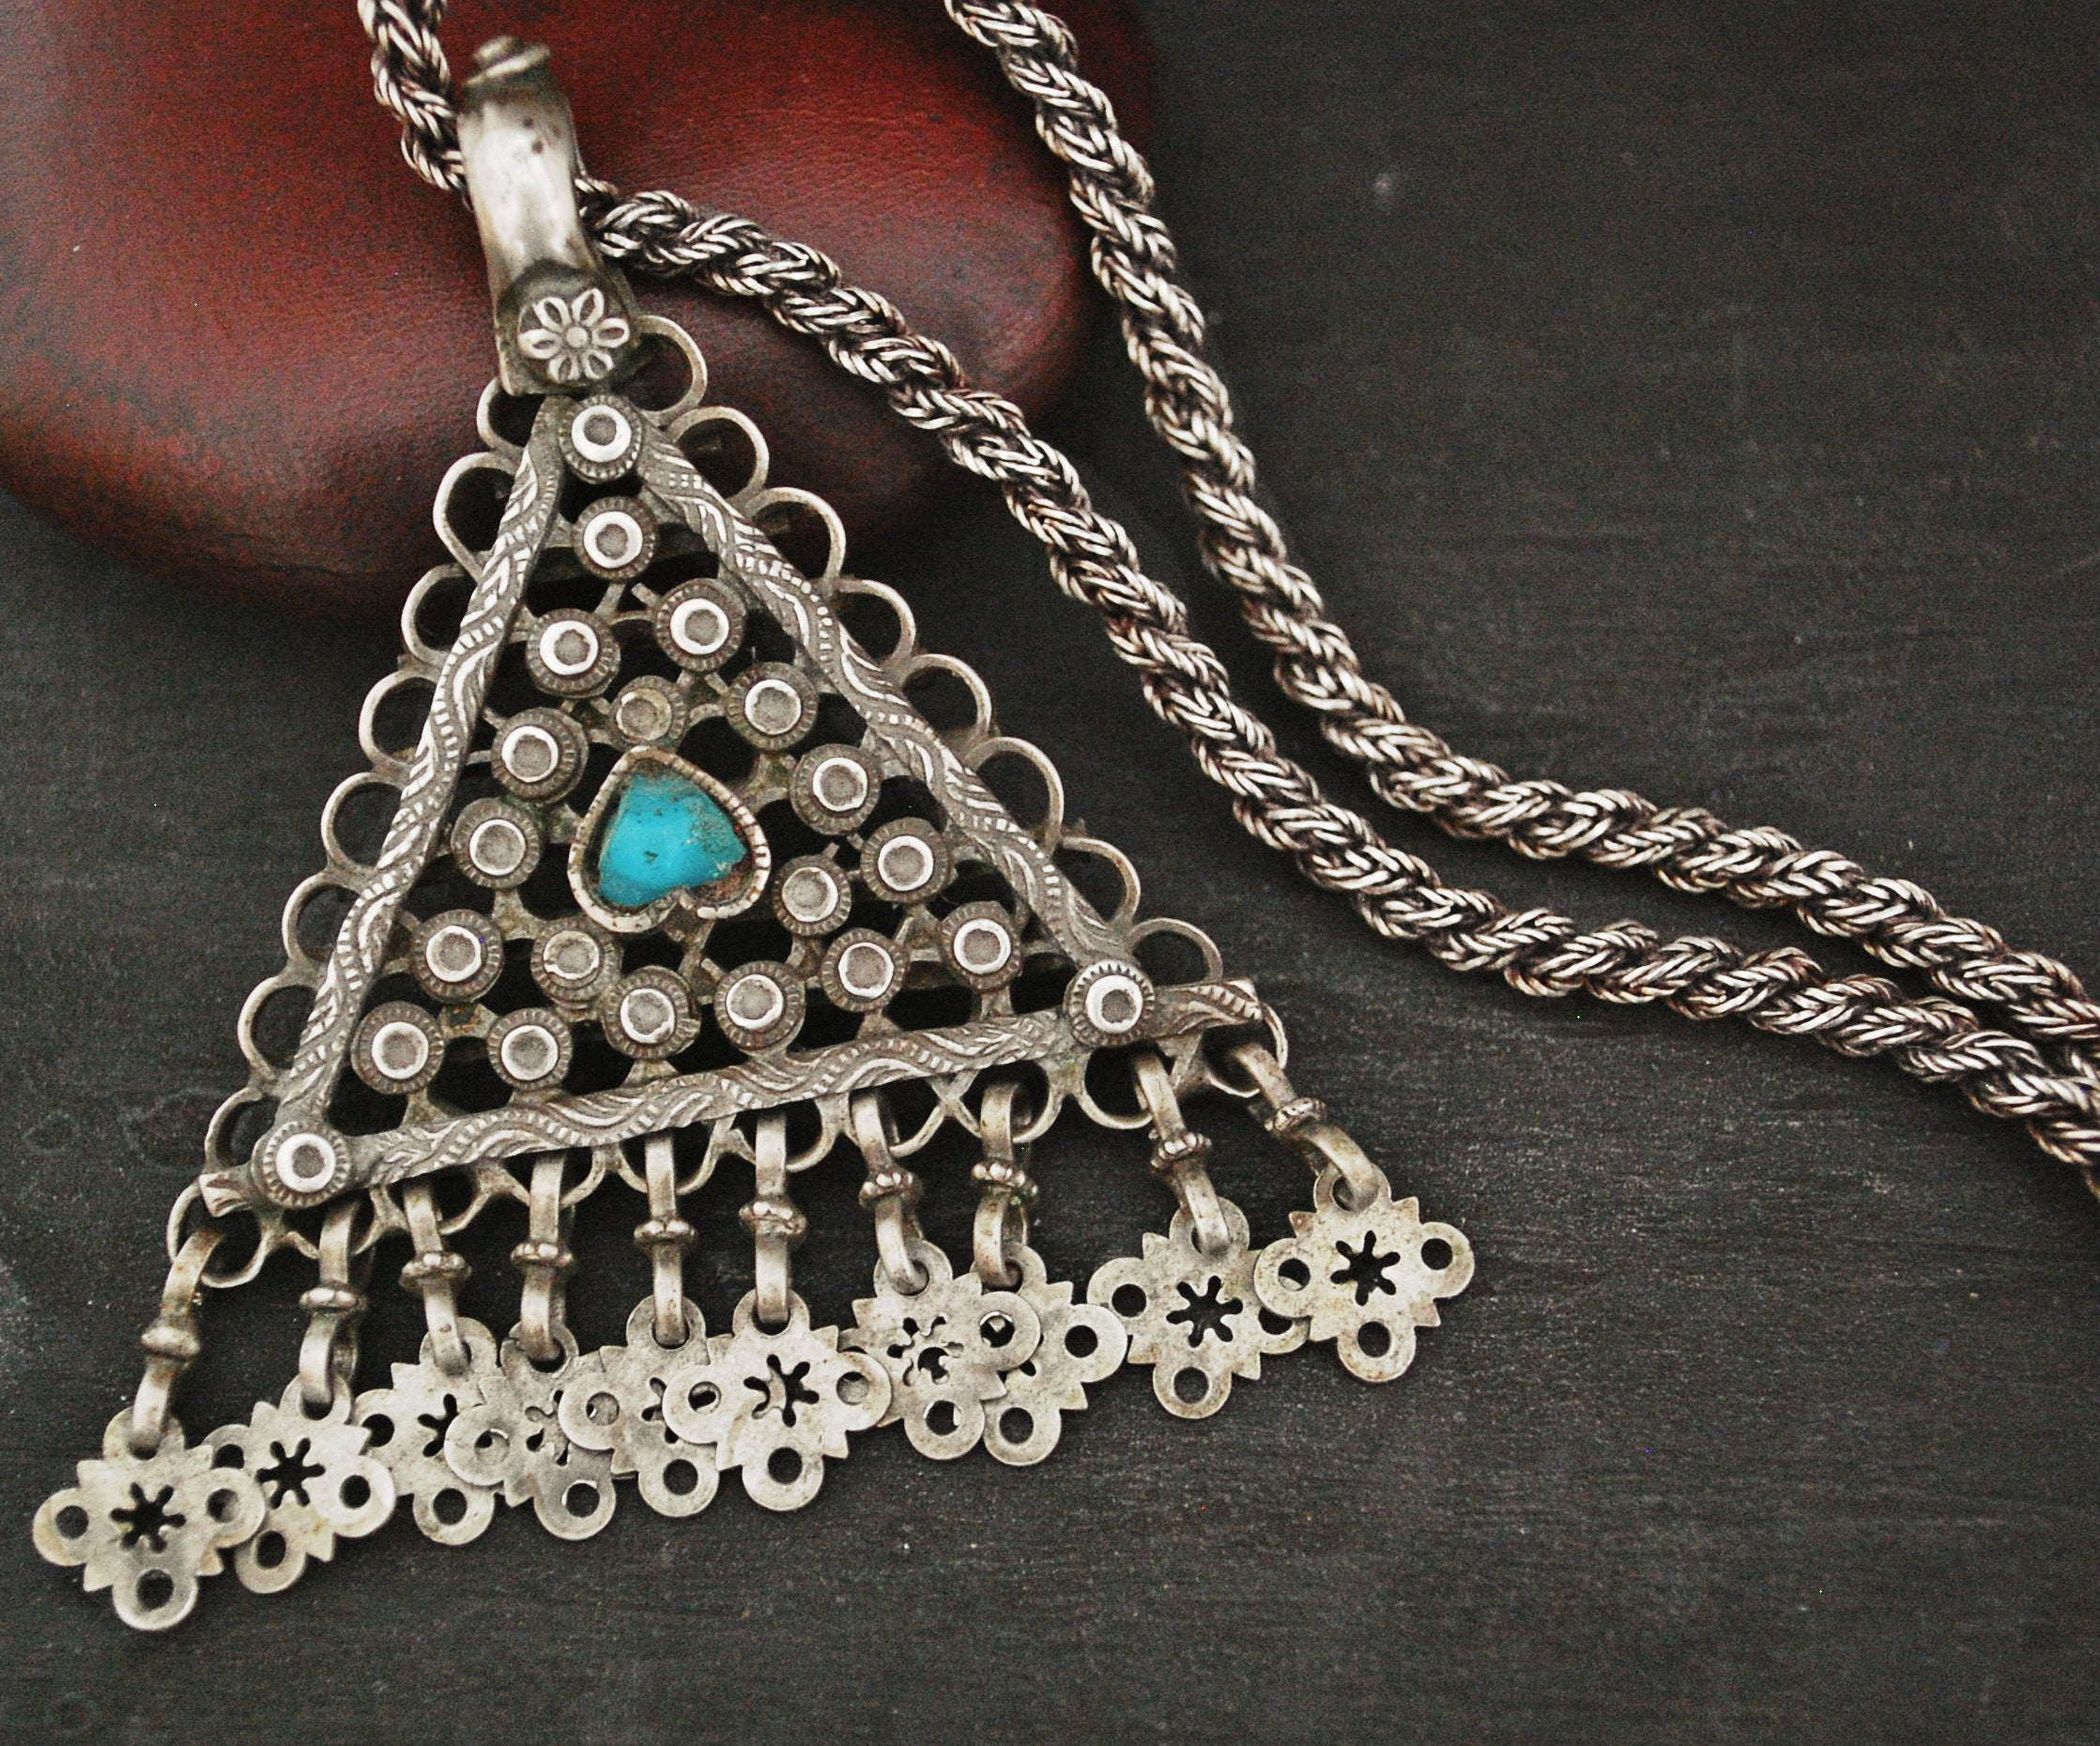 Antique Afghani Silver Turquoise Pendant on Woven Chain